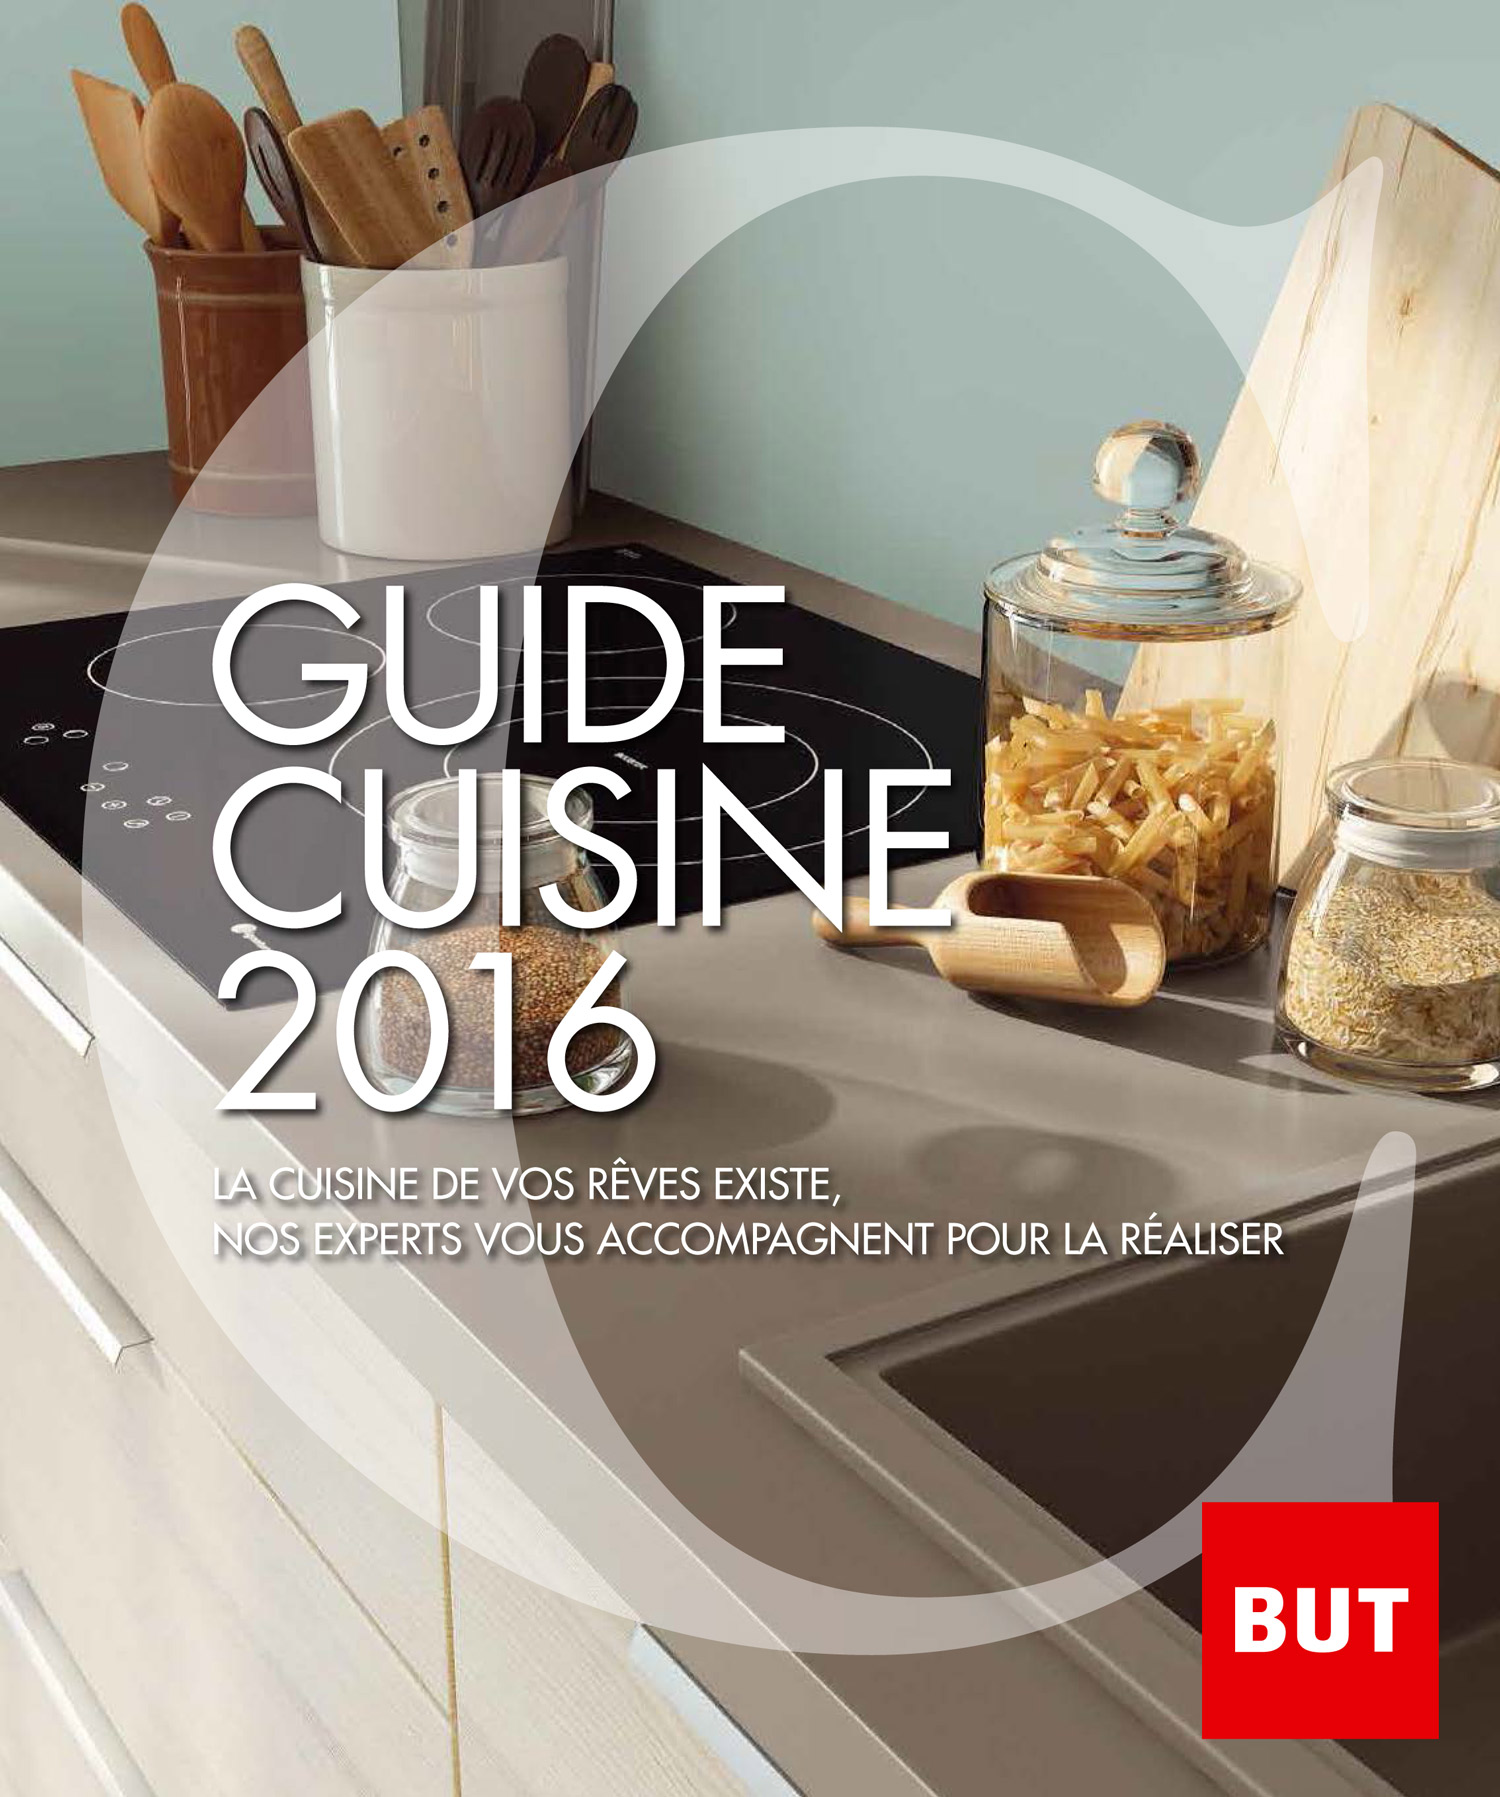 But les guides cuisine et literie 2016 con us par volcan for Design cuisine 2016